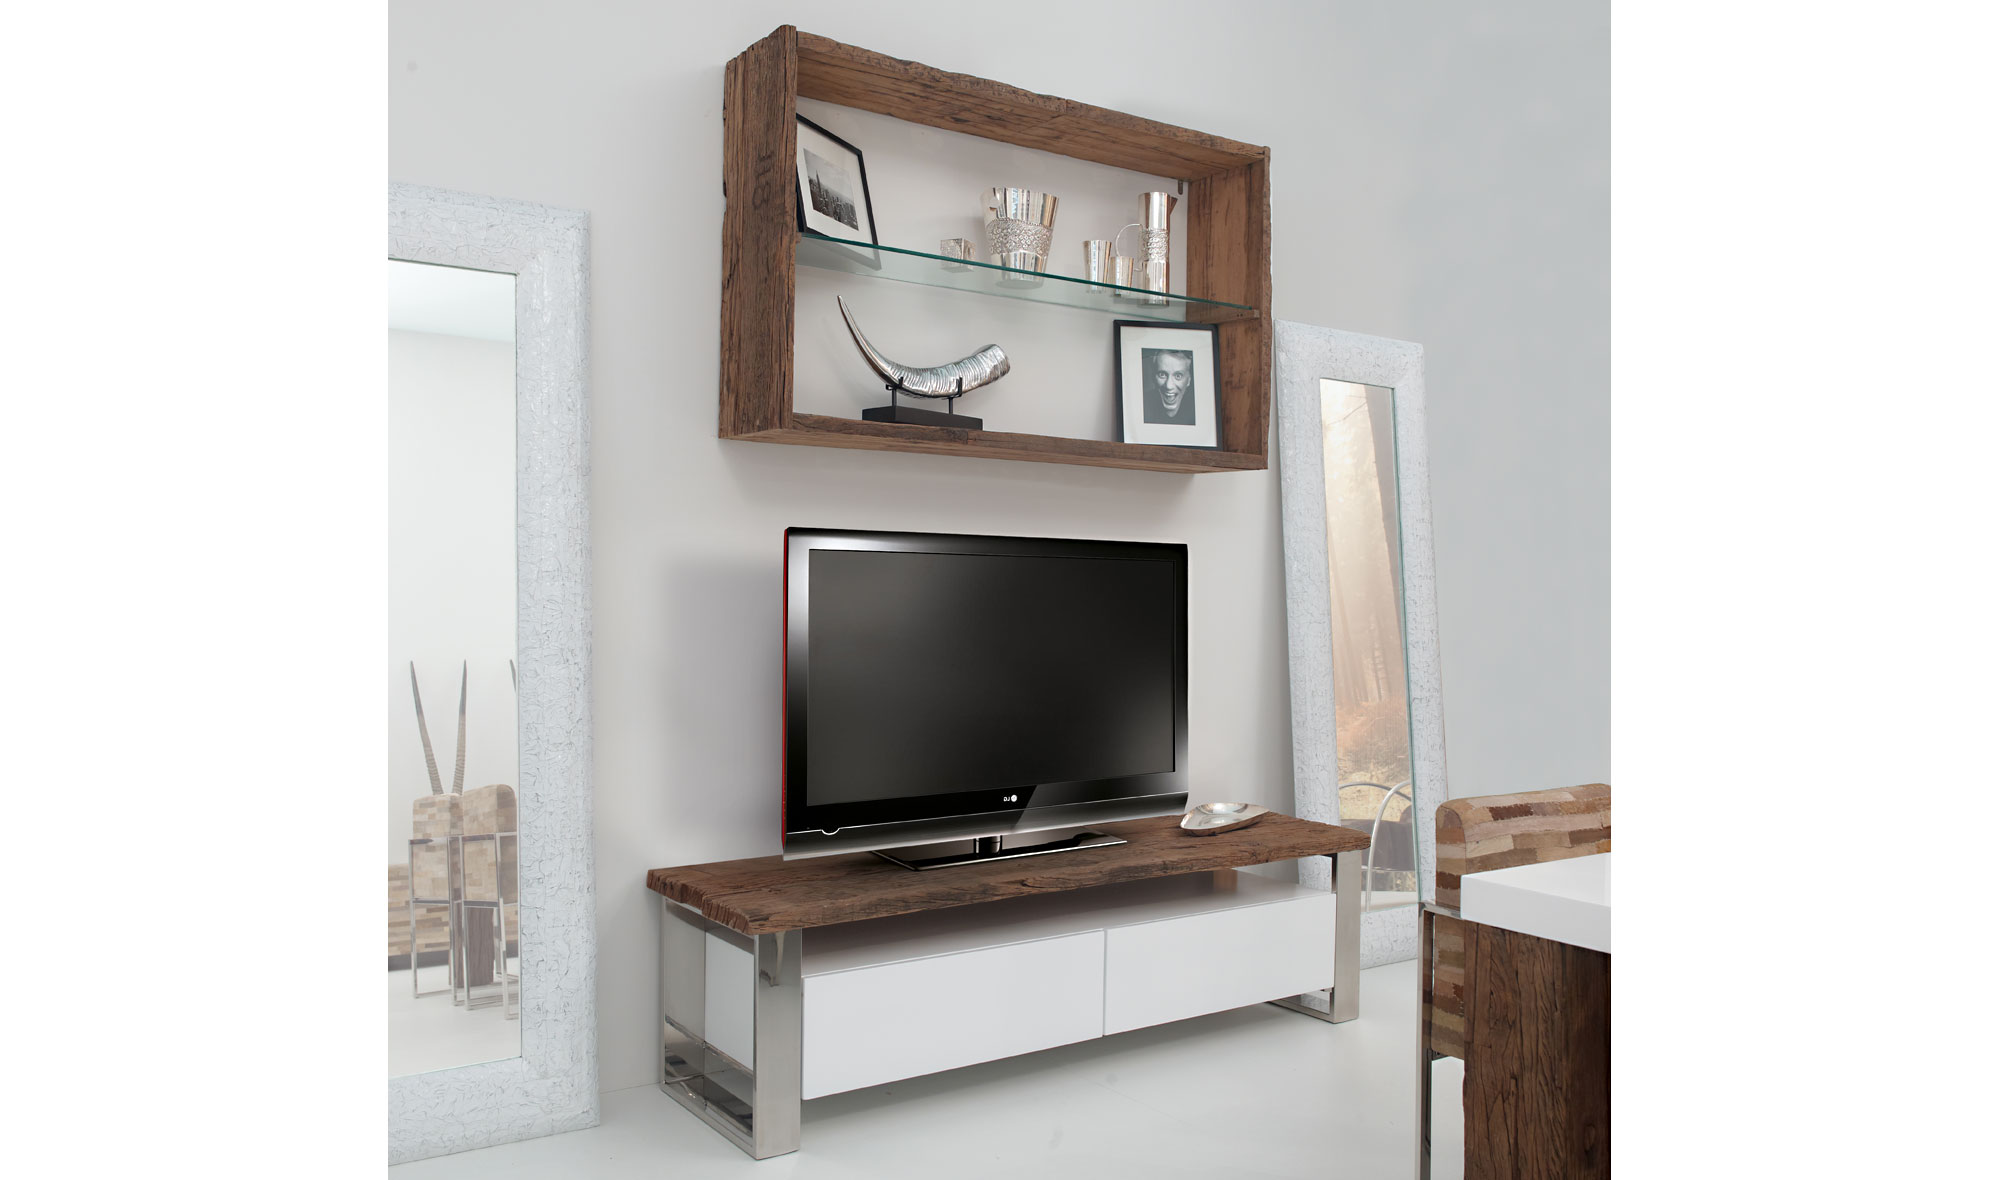 Mueble tv moderno seducti en for Mueble tv moderno